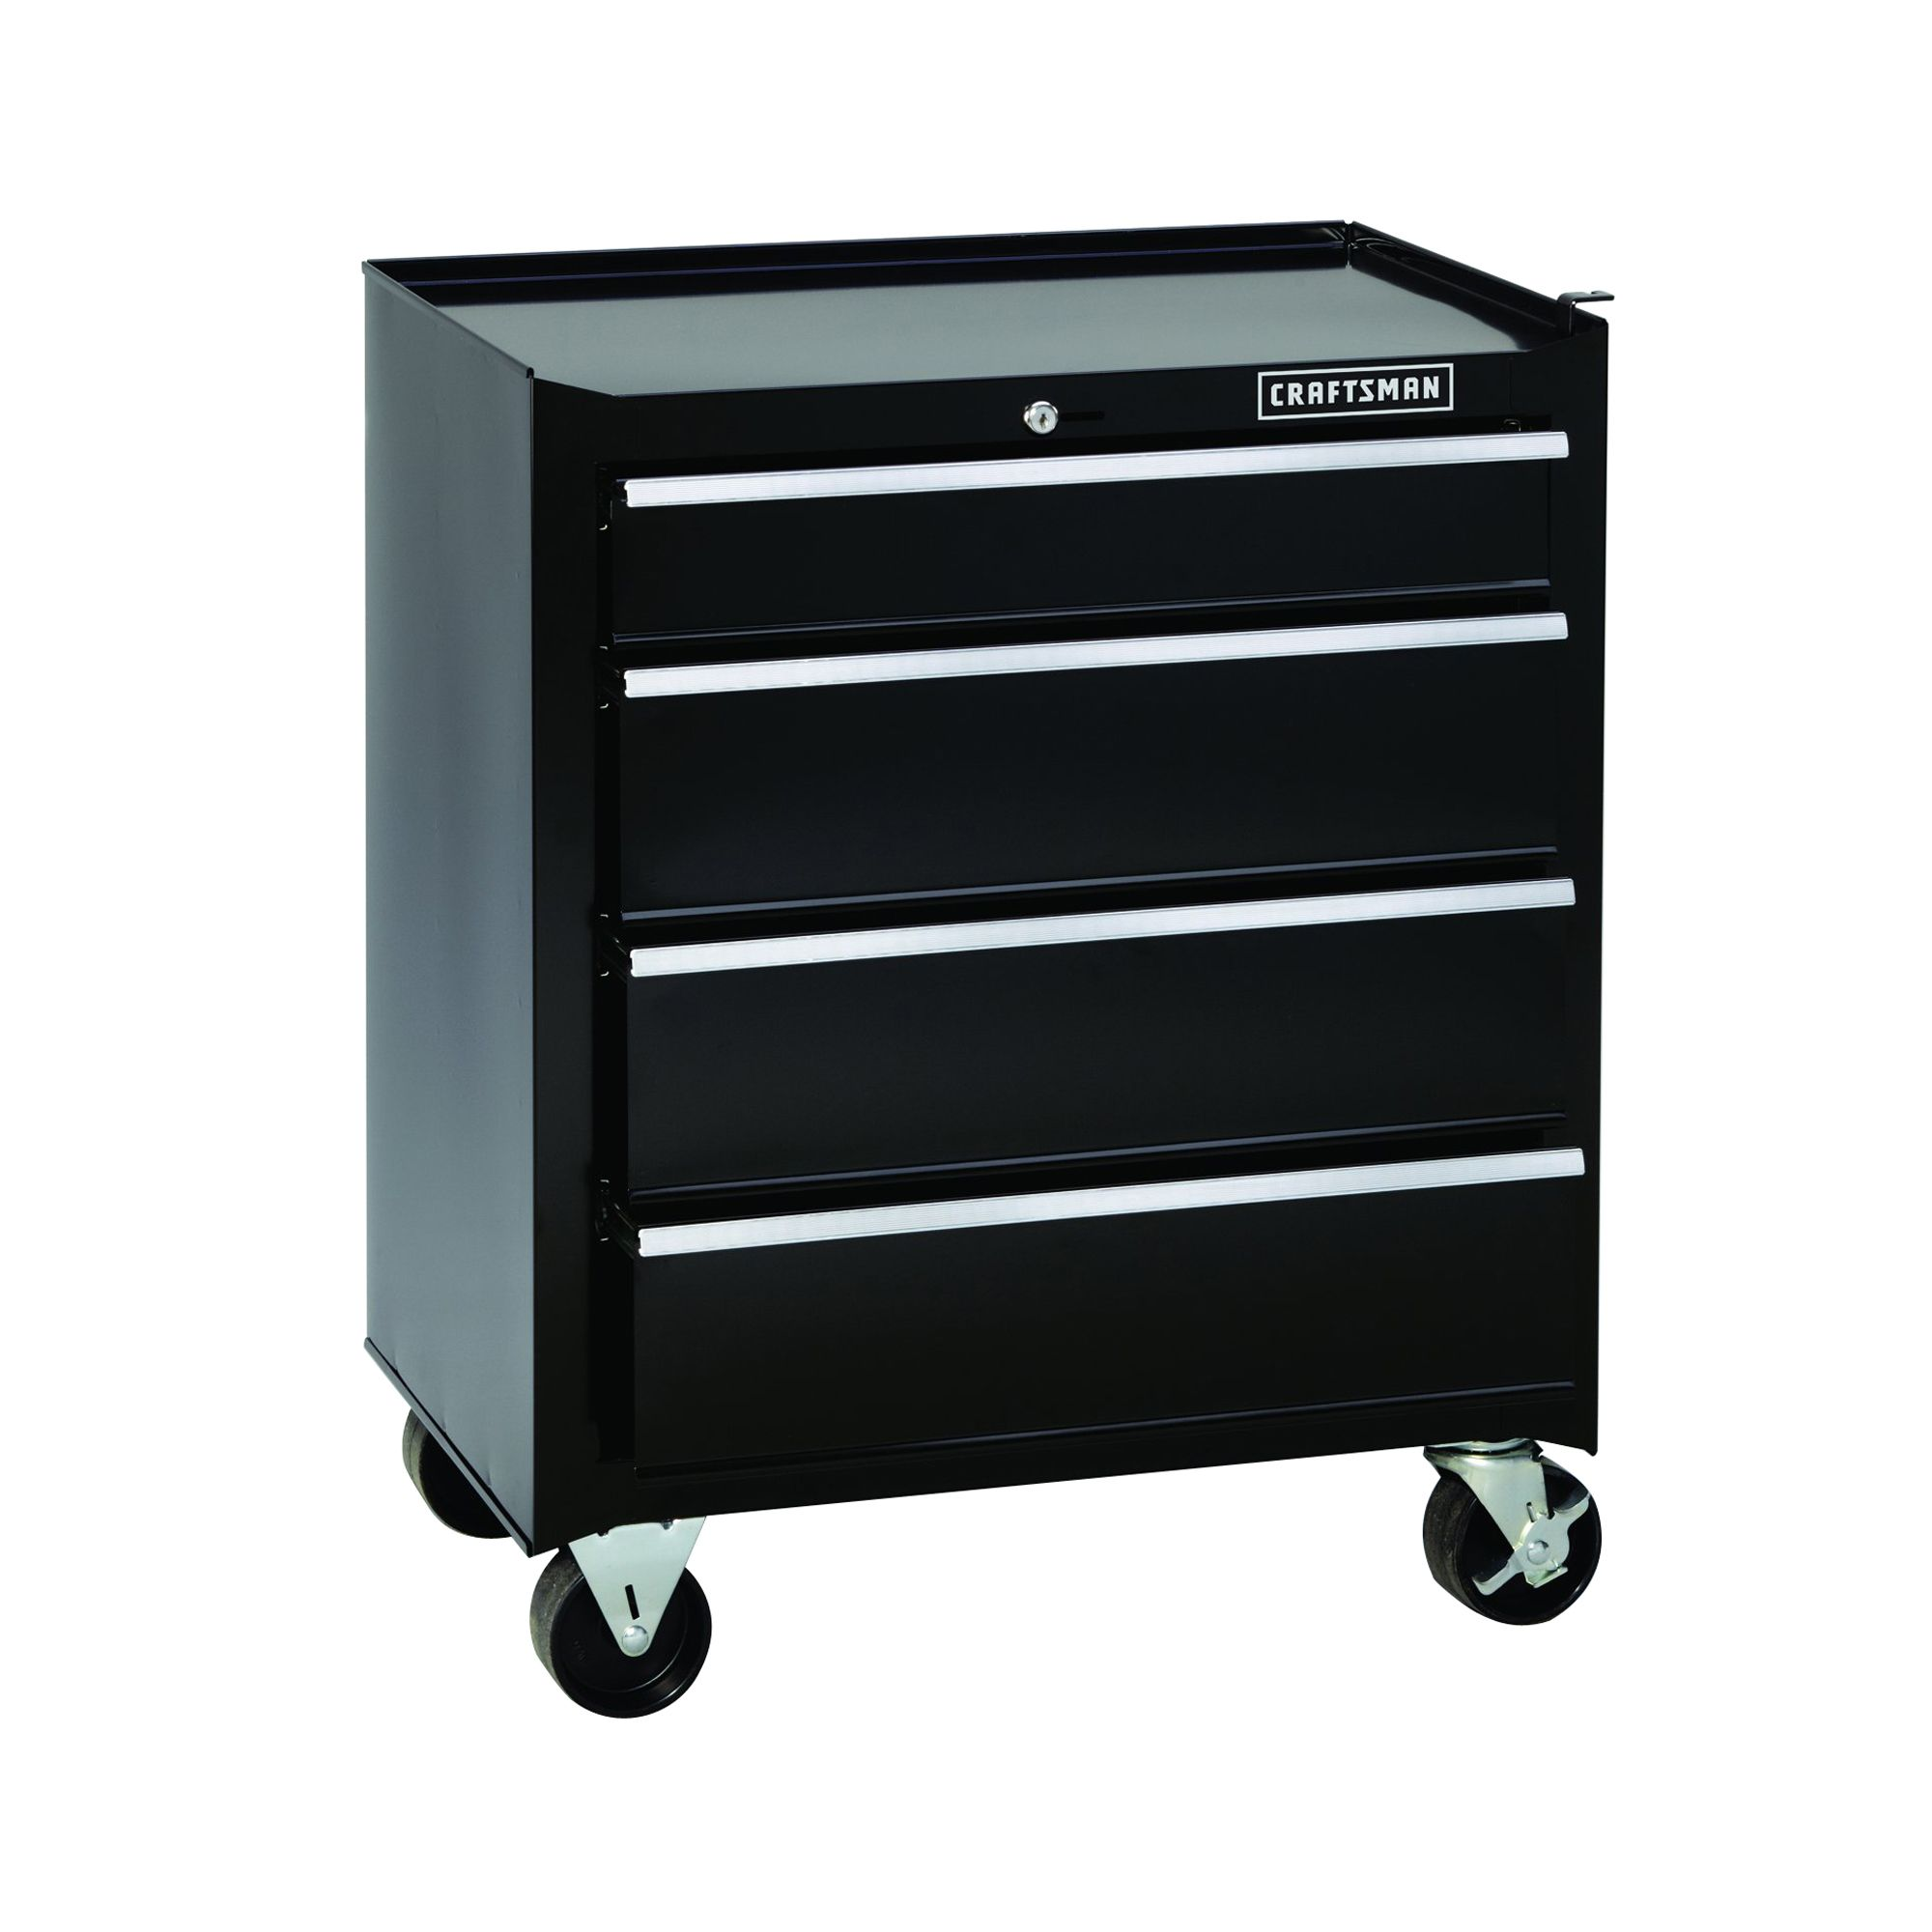 "Craftsman 26"""" Wide 4-Drawer Basic Bottom Chest - Black"